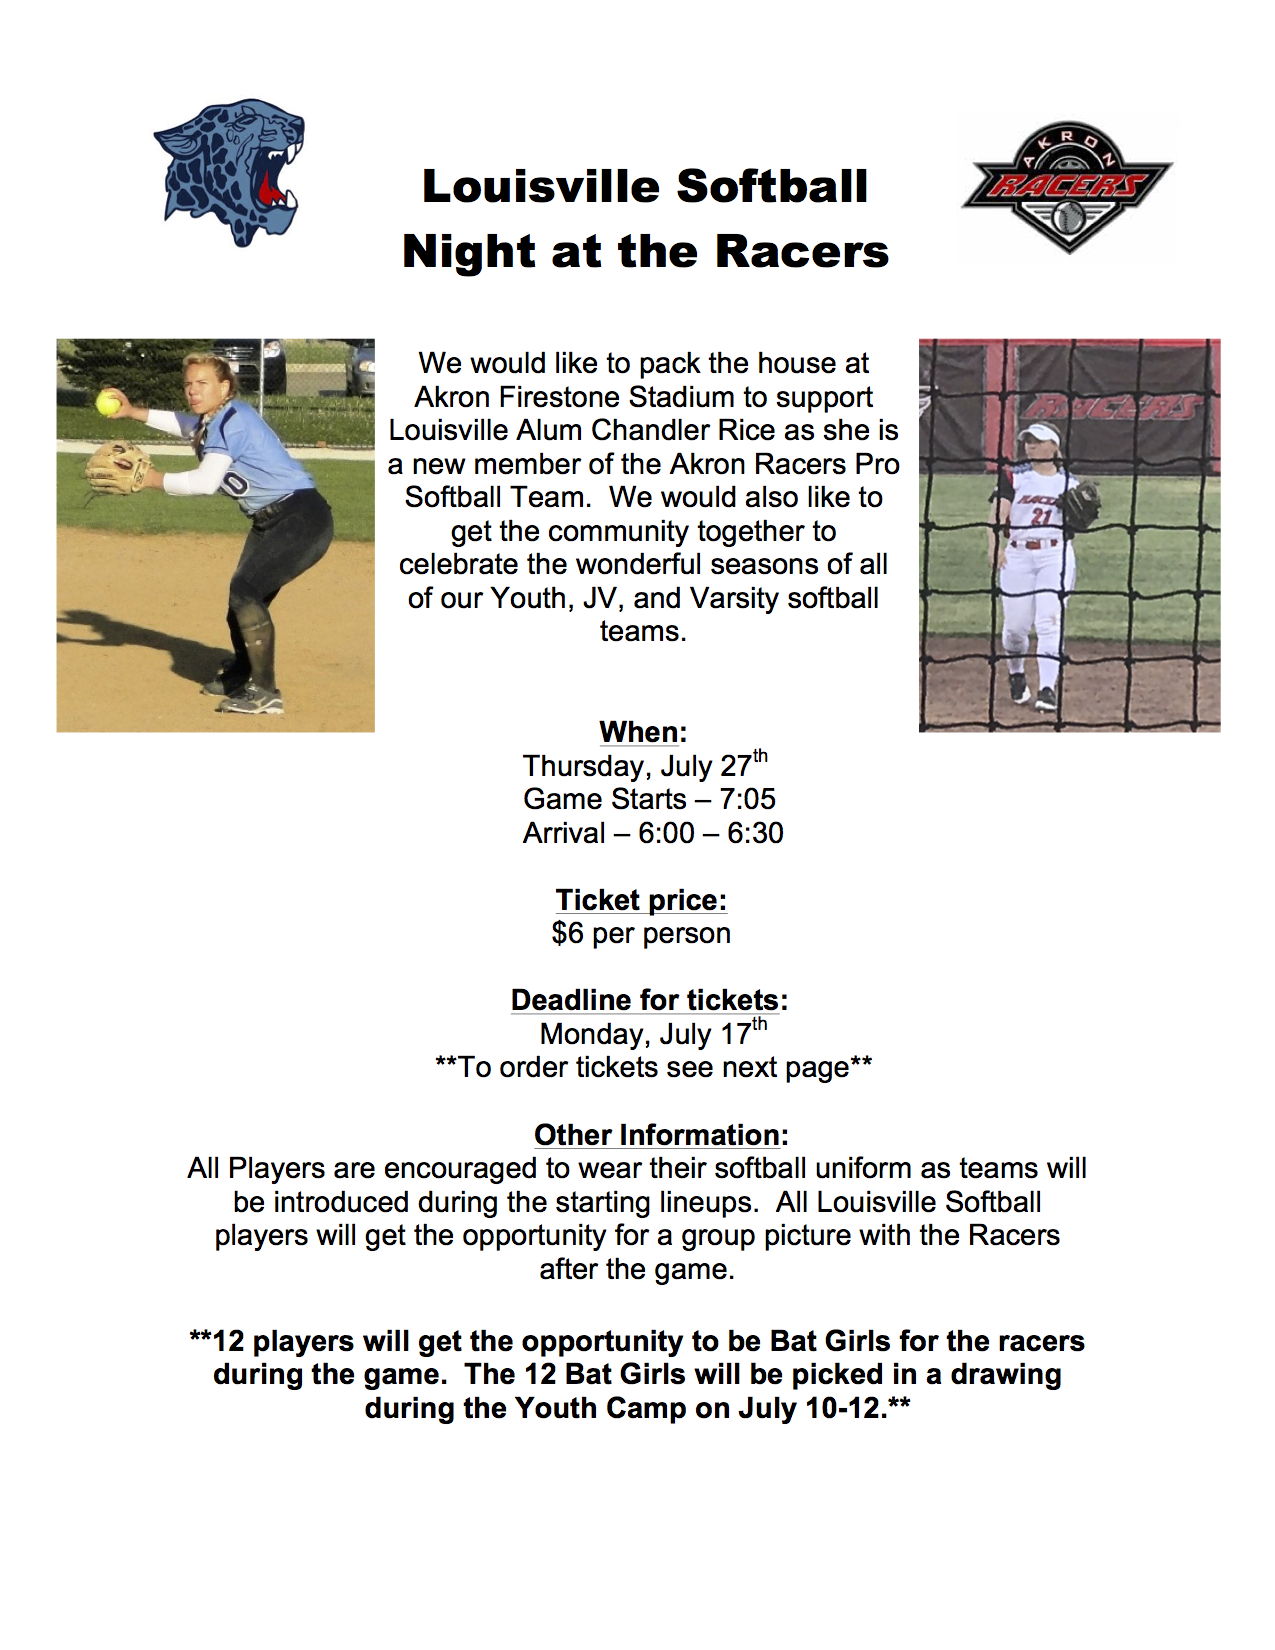 Louisville Softball Night at the Akron Racers Flyer